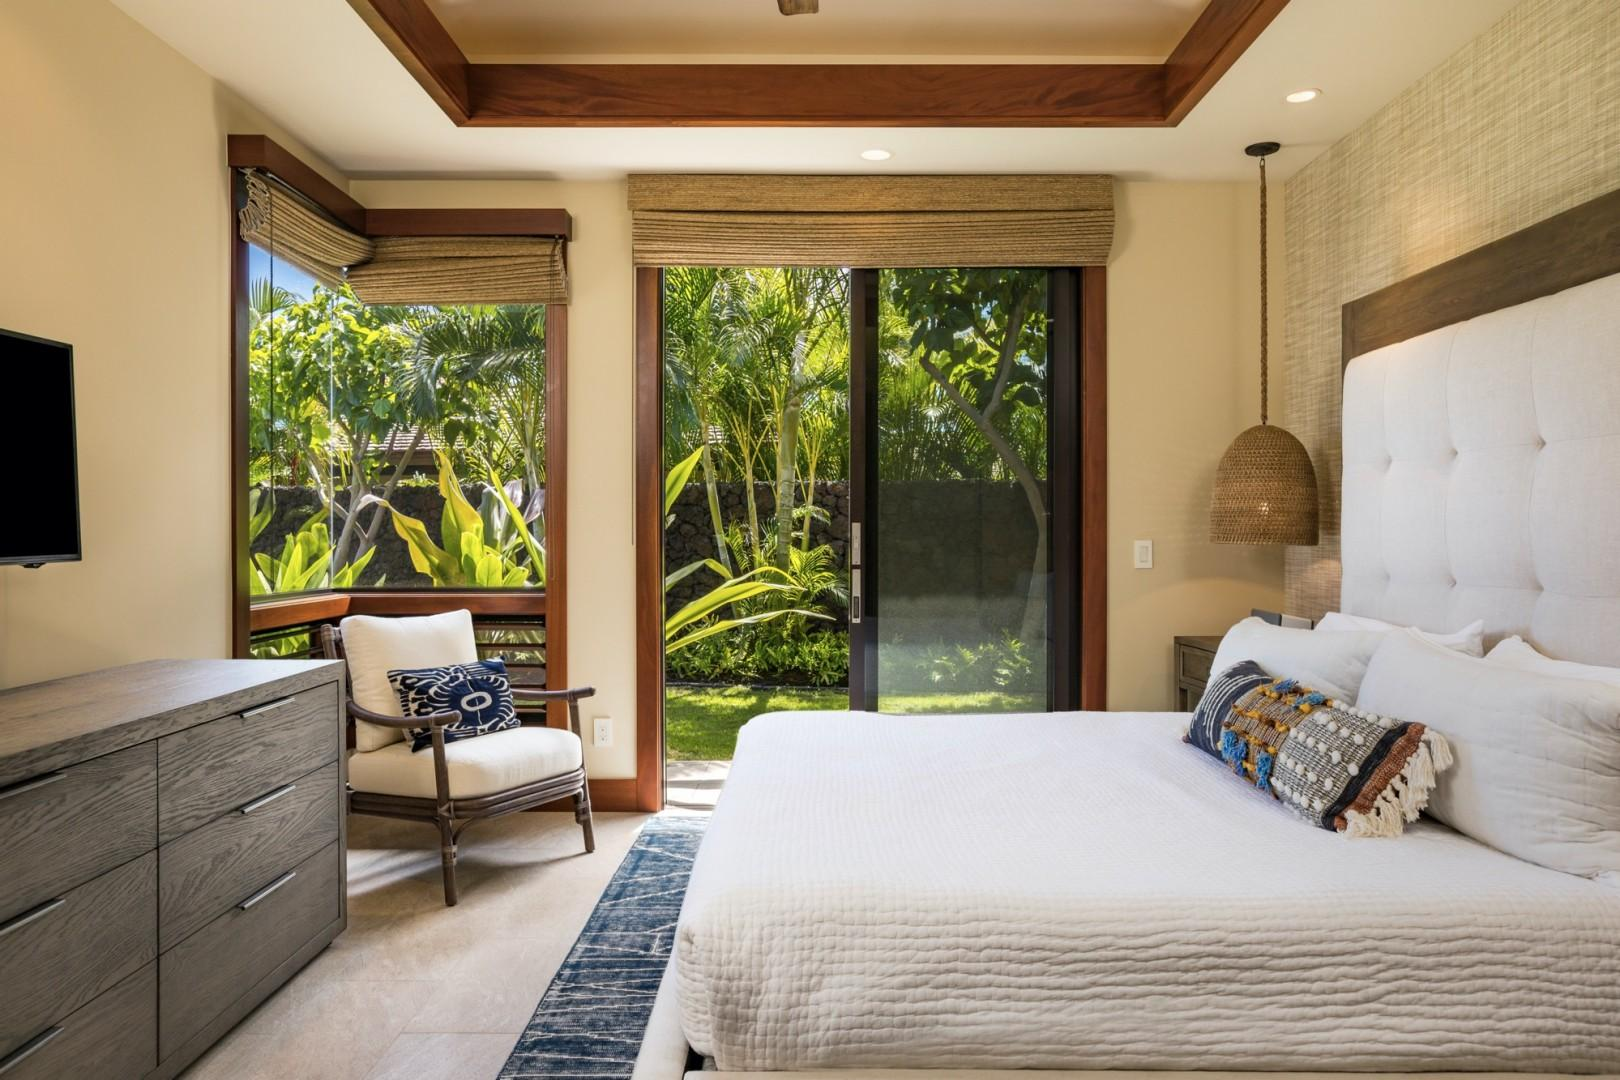 Guest bedroom two, off the kitchen, boasts sliding doors to a private lanai with lawn area.